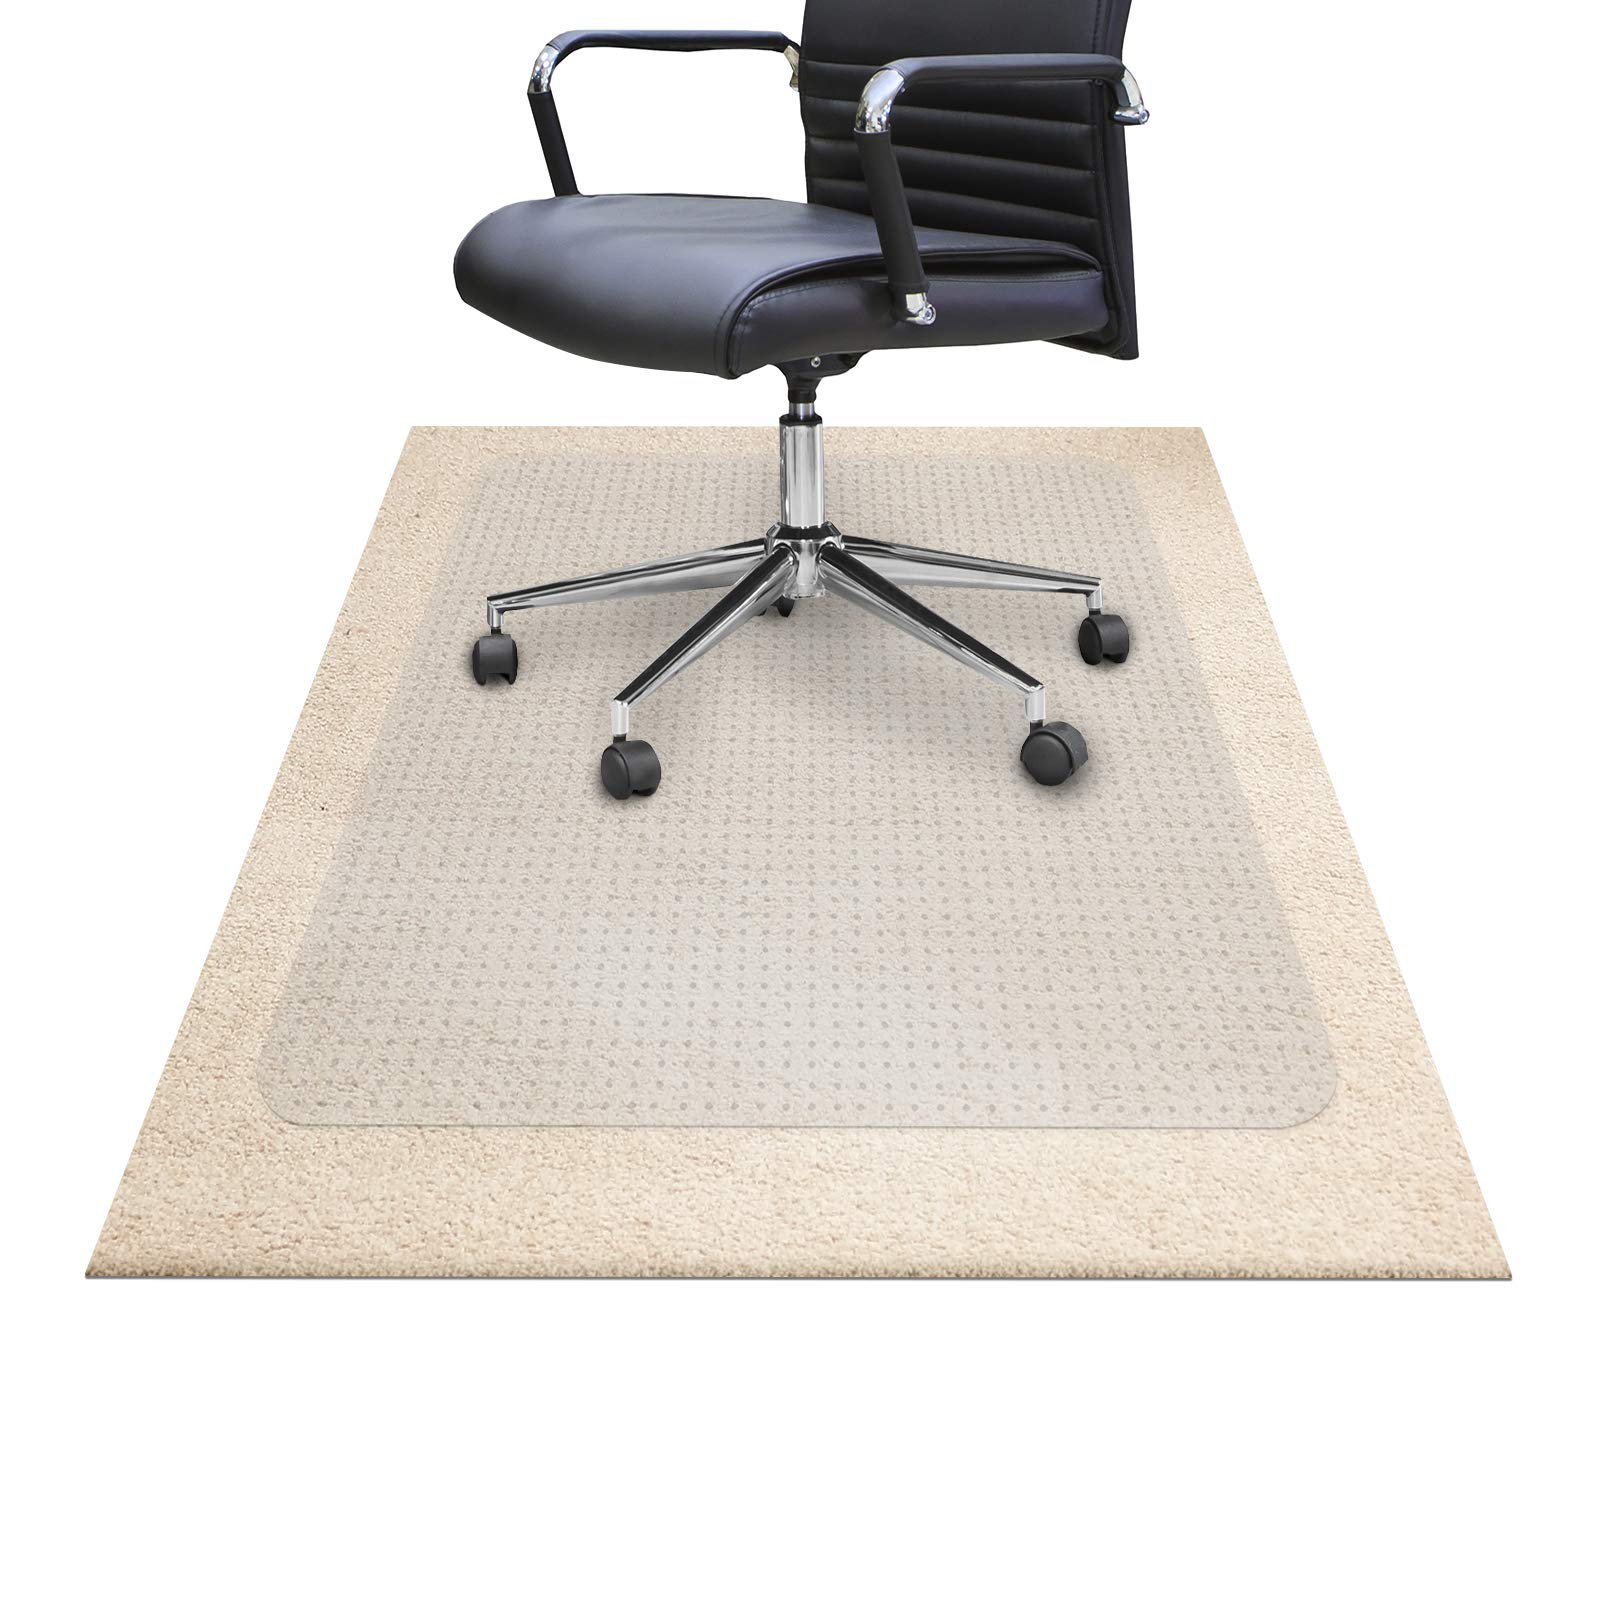 "Chair Mats for Carpeted Floors – Shatter-Proof Carpet Protector for Desk Chair | Eco-Friendly Low/Medium Pile Office Chair Mat for Carpet | Clear- 48"" x 60"" by OfficeMarshal (Image #6)"